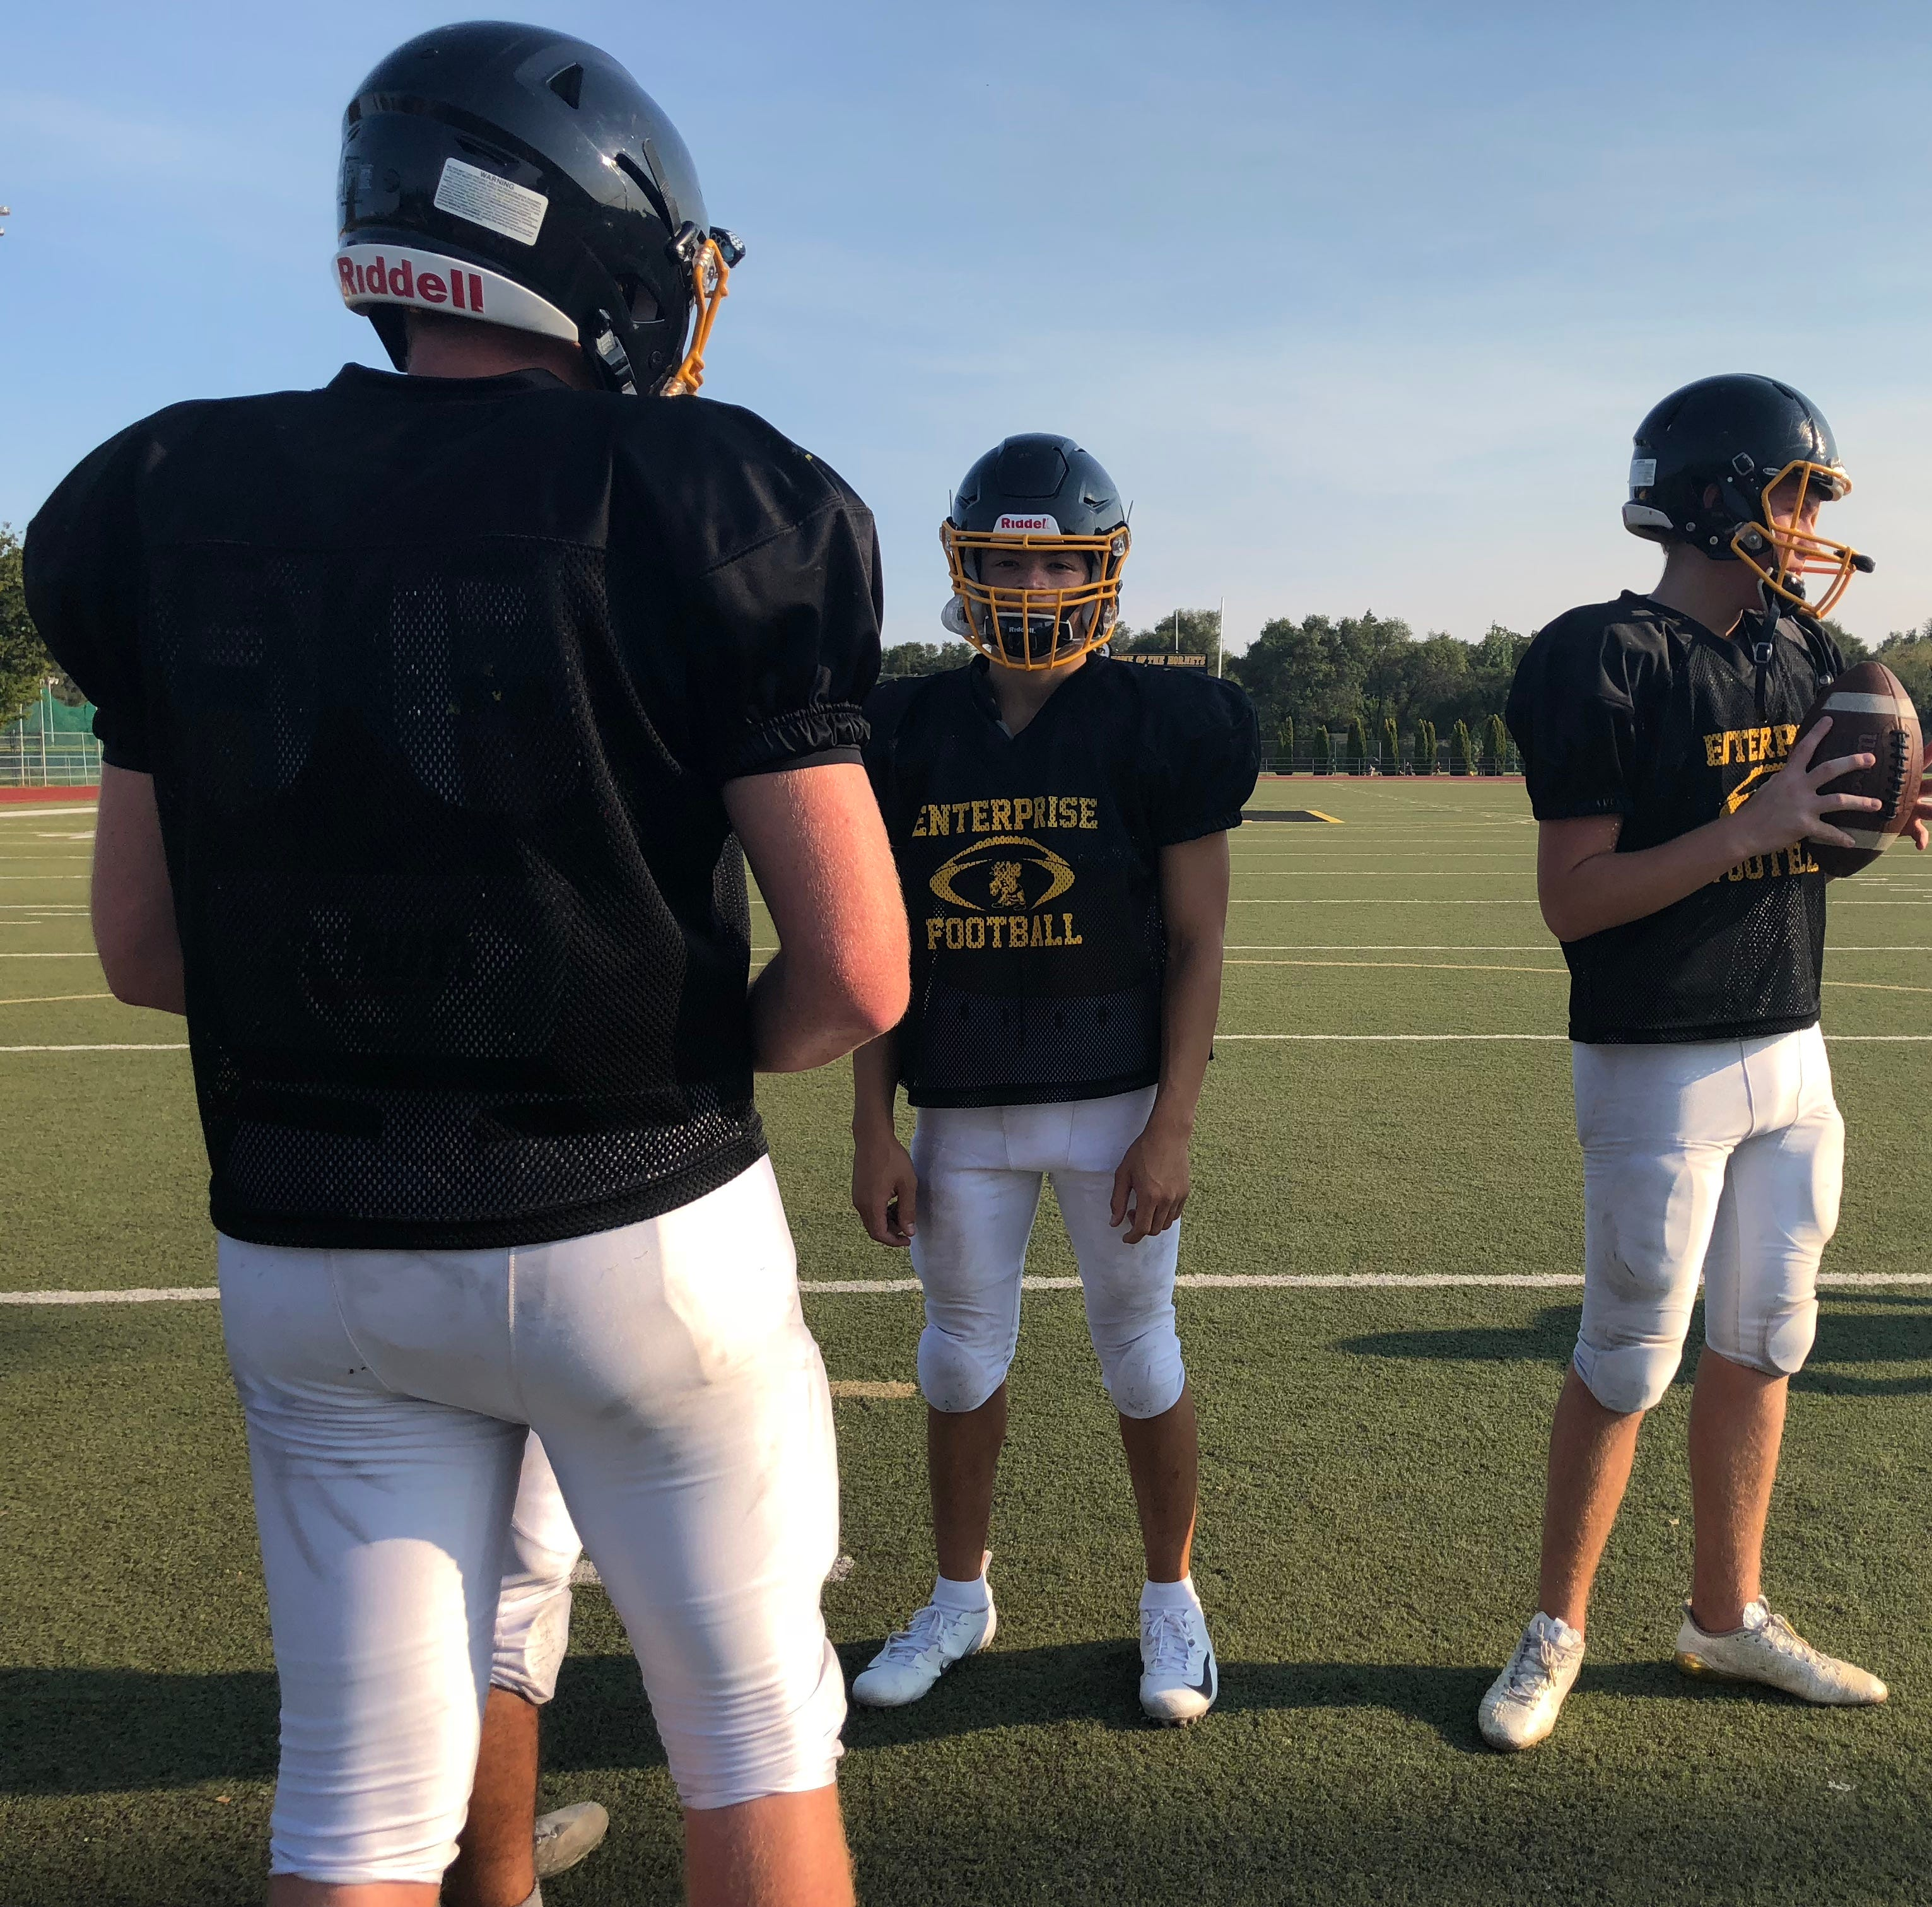 Season preview: Enterprise eager to resurrect winning ways under first-year coach